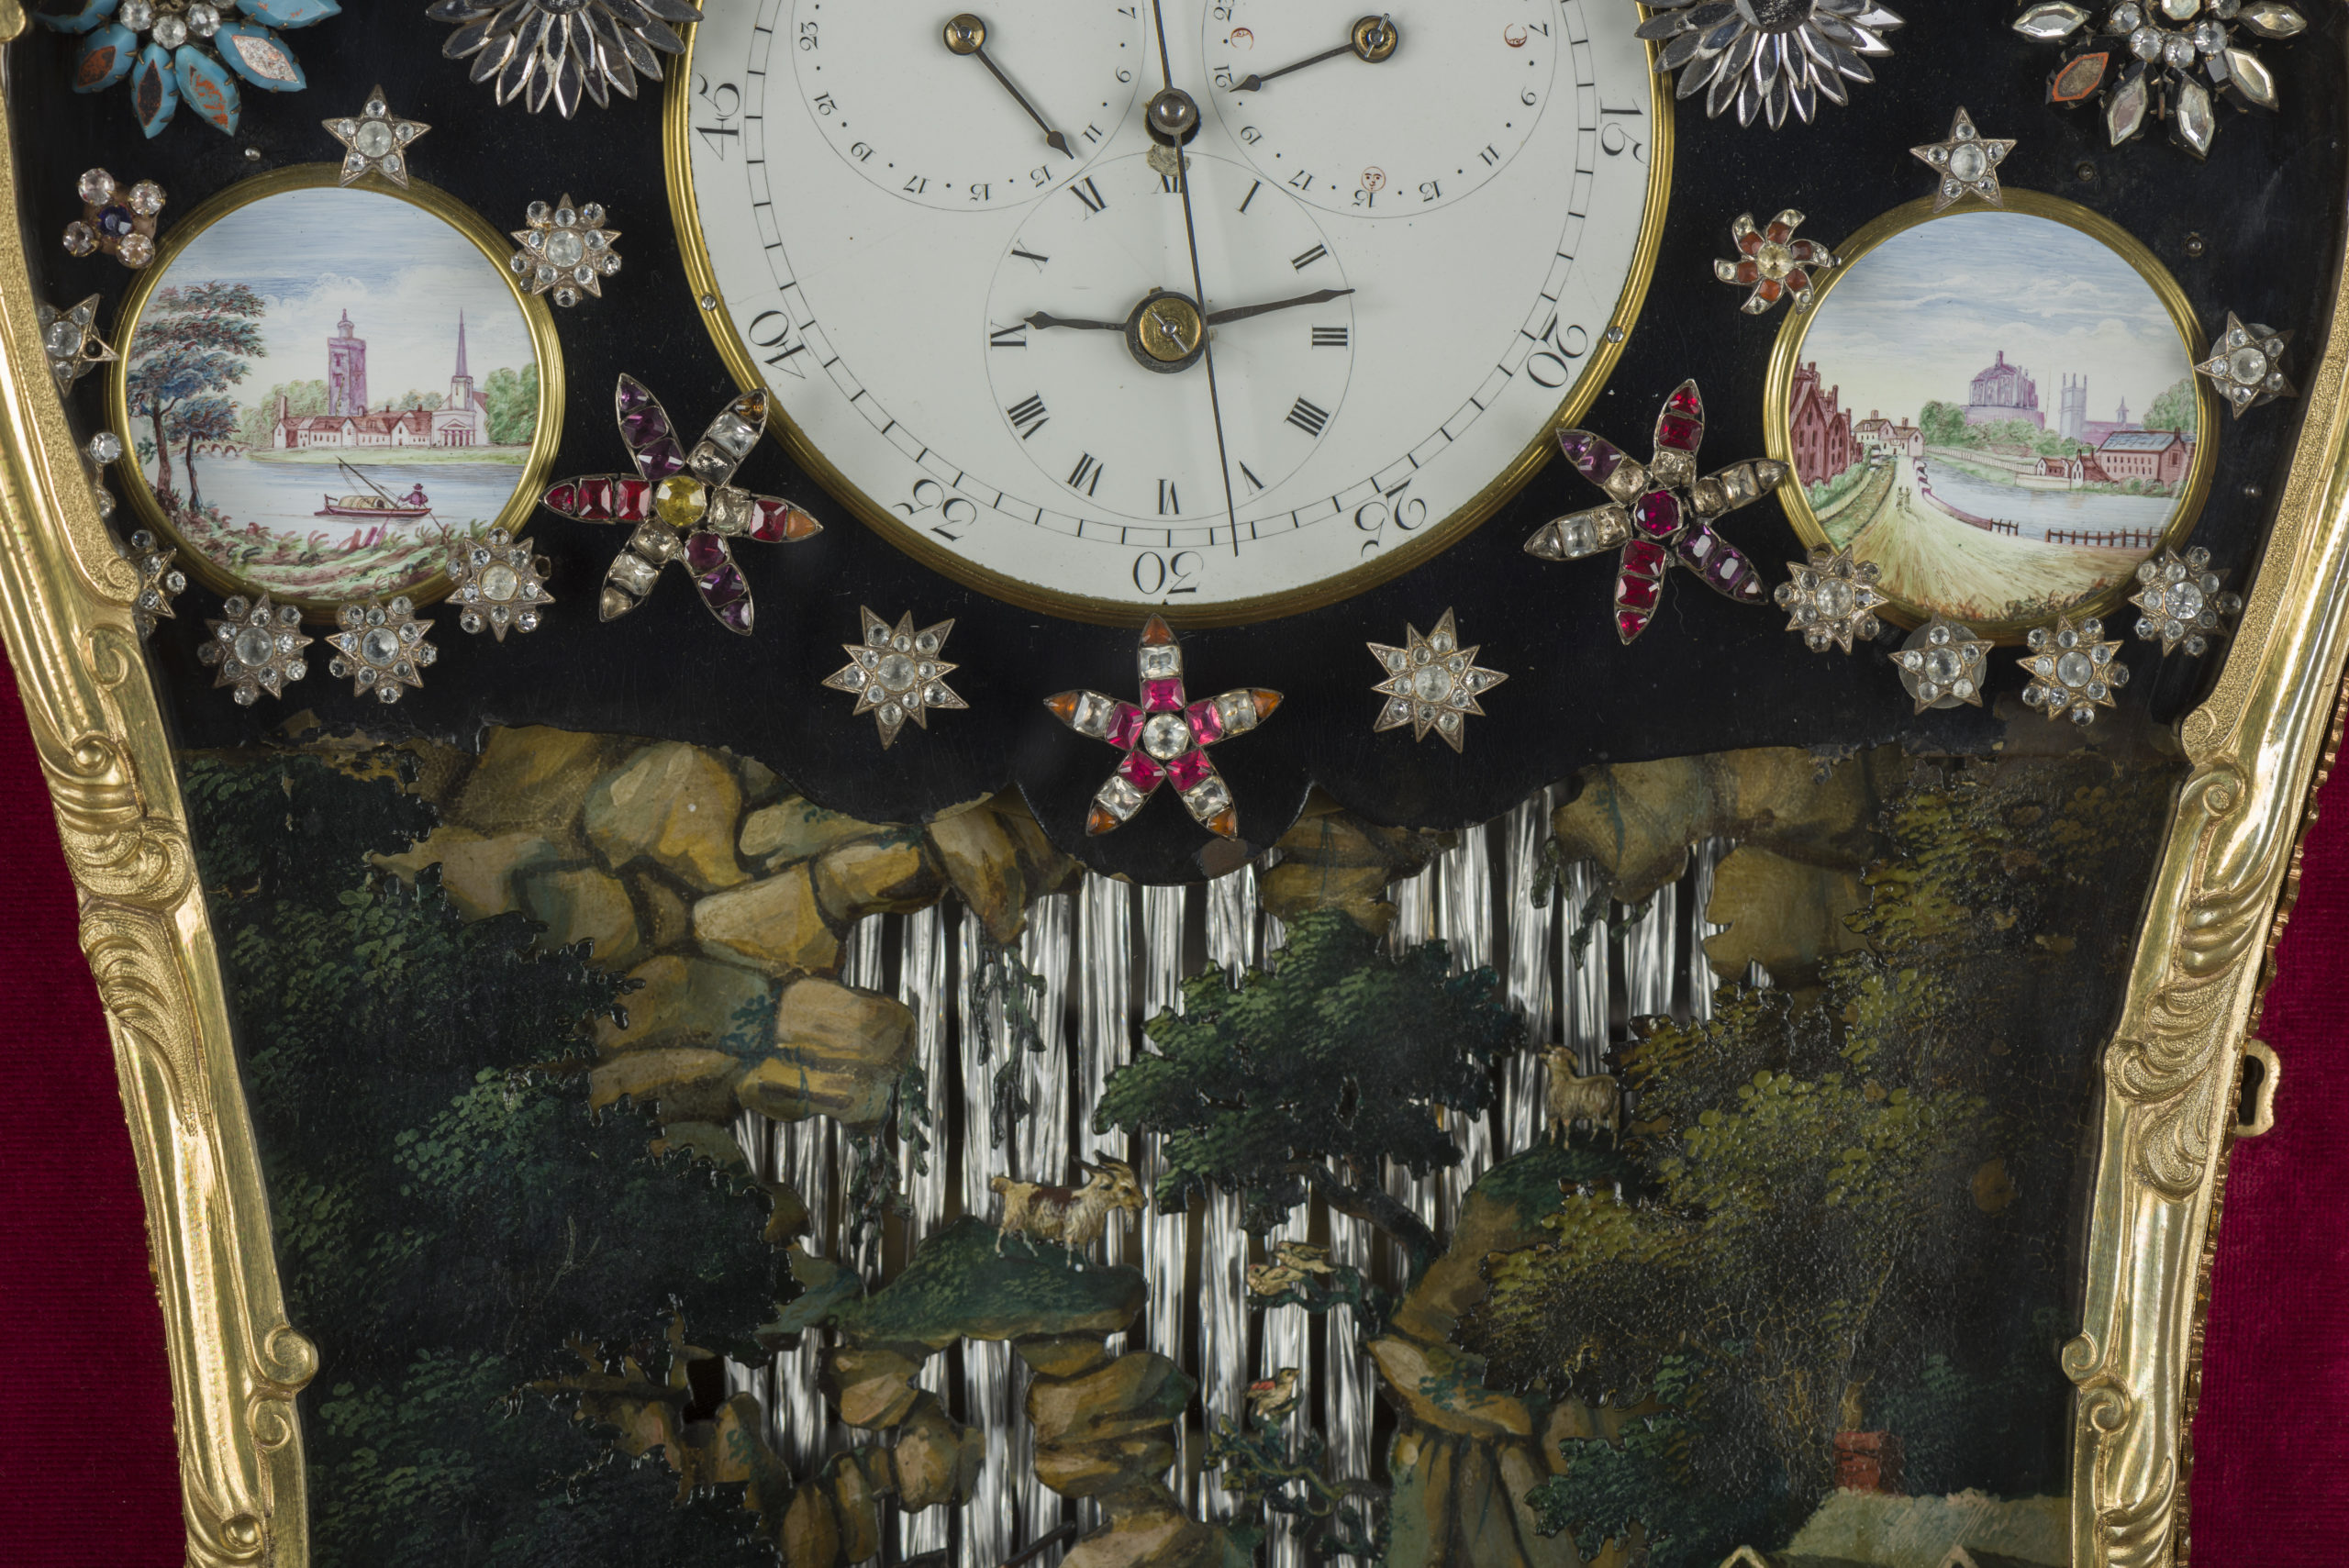 Close up on clock face, showing jewelled flowers/stars which surround the clock face. On either side of the clock face, there are small pictures of river-side scenes. Below this, there is the top of a waterfall scene, showing a goat and several birds in the greenery surrounding this scene.